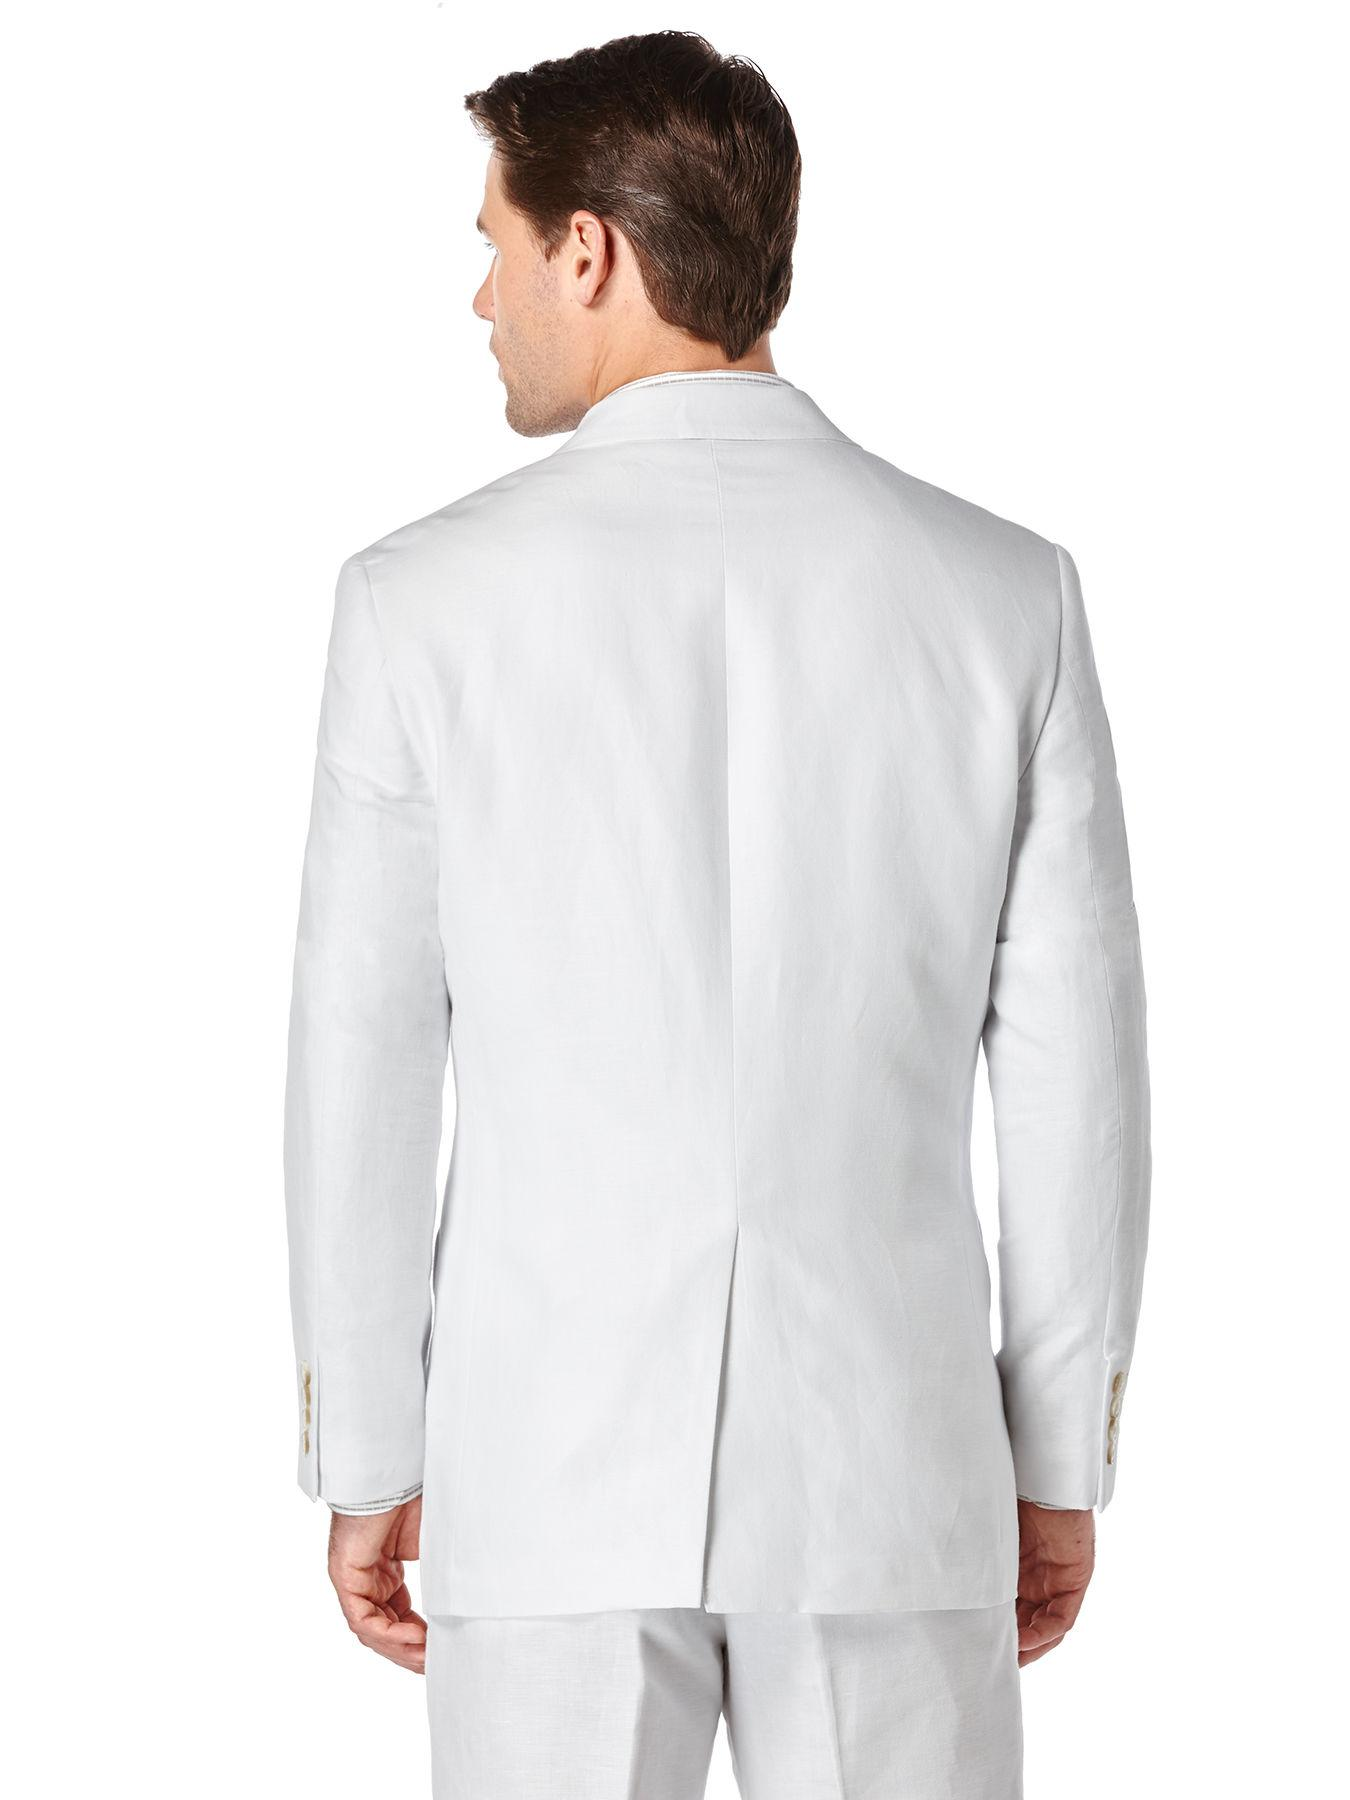 Perry Ellis Big Tall Linen Twill Suit Jacket In White For Men Lyst